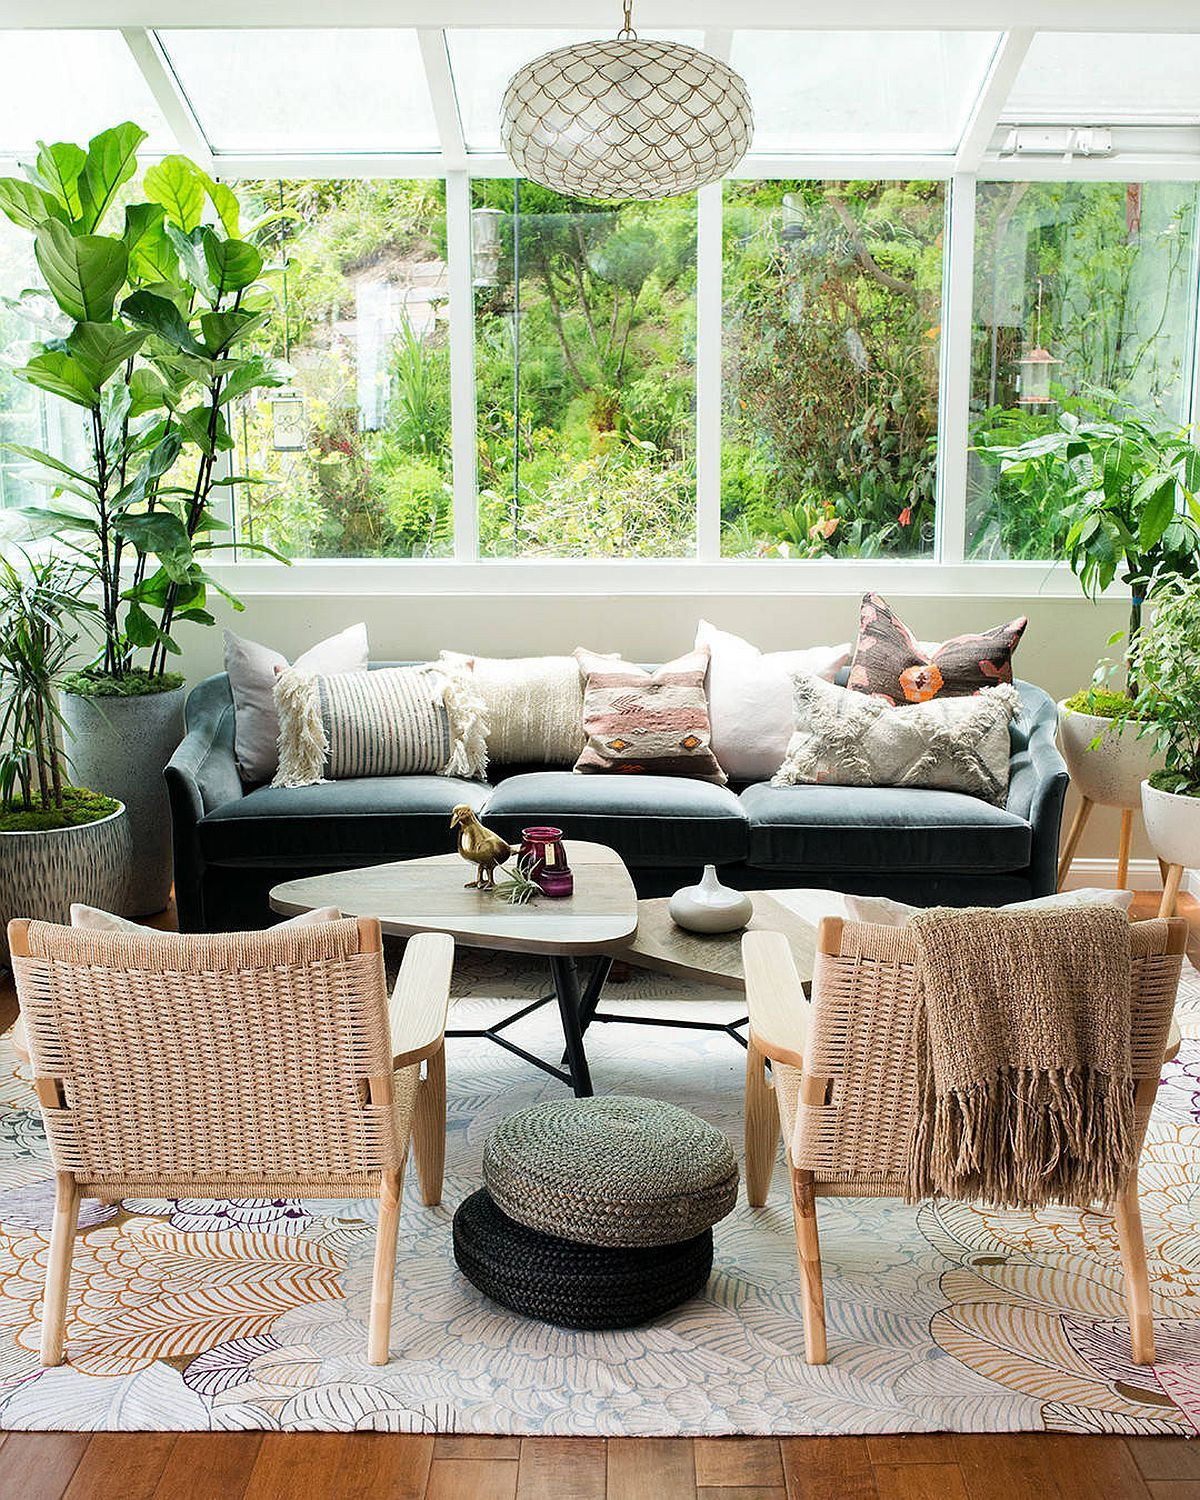 Comfortable modern decor can be combined with greenery to create the perfect small sunroom